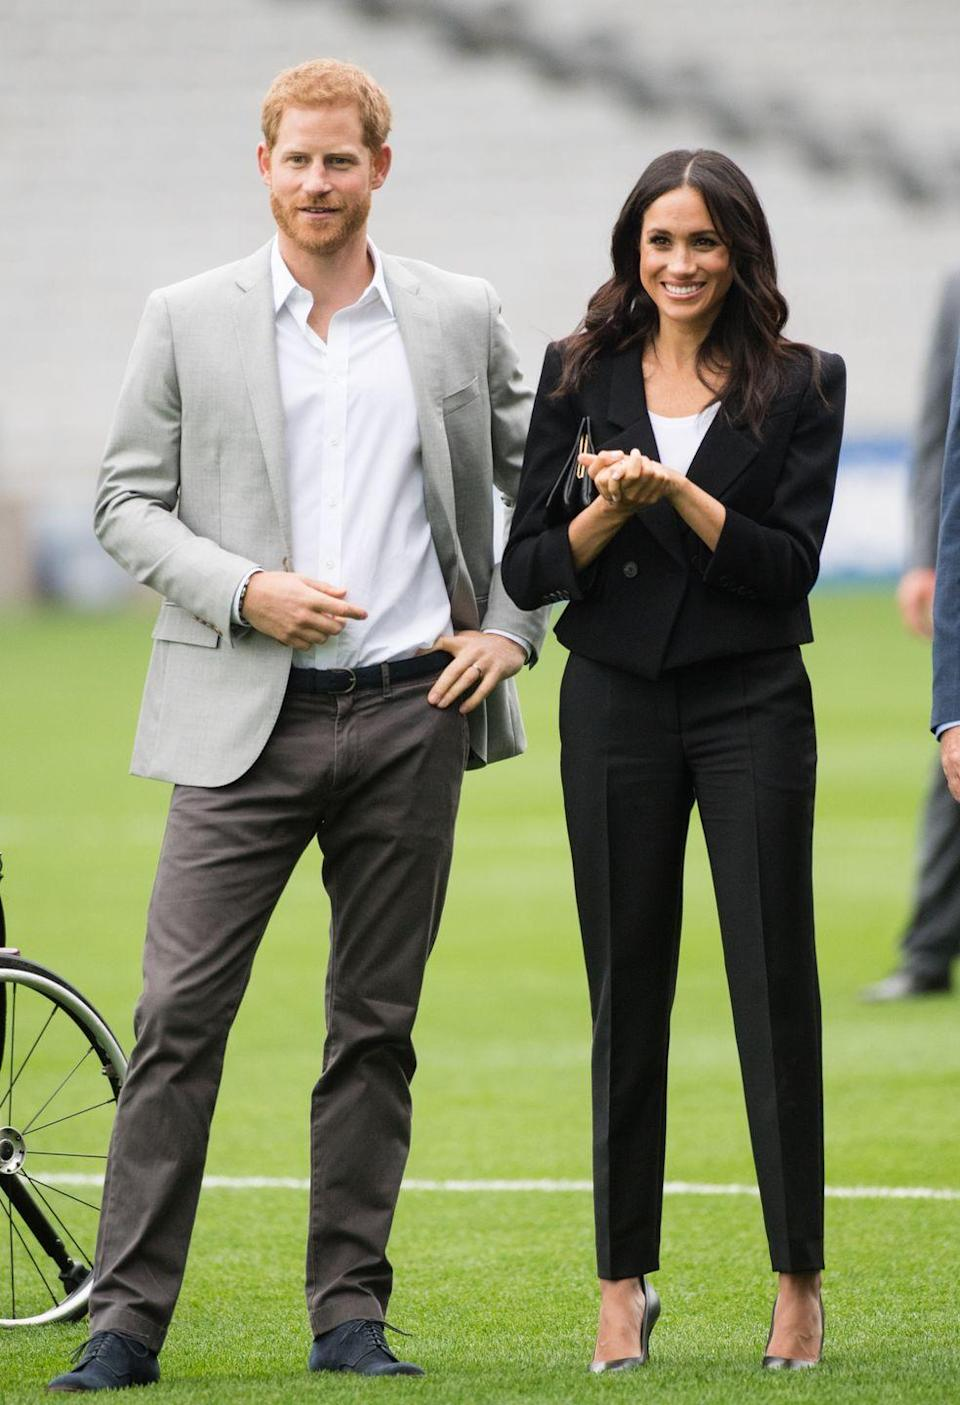 """<p><a href=""""https://www.townandcountrymag.com/style/fashion-trends/a22113279/meghan-markle-black-pants-suit-dublin-royal-visit-2018/"""" rel=""""nofollow noopener"""" target=""""_blank"""" data-ylk=""""slk:For her second outfit of the day,"""" class=""""link rapid-noclick-resp"""">For her second outfit of the day,</a> Meghan wore a sleek Givenchy pantsuit with <a href=""""https://go.redirectingat.com?id=74968X1596630&url=https%3A%2F%2Fwww.sarahflint.com%2Fproducts%2Fperfect-pump-100-black-nappa-2%3Fvariant%3D8211317948513&sref=https%3A%2F%2Fwww.townandcountrymag.com%2Fstyle%2Ffashion-trends%2Fg3272%2Fmeghan-markle-preppy-style%2F"""" rel=""""nofollow noopener"""" target=""""_blank"""" data-ylk=""""slk:a pair of pumps by Sarah Flint"""" class=""""link rapid-noclick-resp"""">a pair of pumps by Sarah Flint</a>, one of the <a href=""""https://www.townandcountrymag.com/style/fashion-trends/g12478382/meghan-markle-favorite-fashion-brands-designers/"""" rel=""""nofollow noopener"""" target=""""_blank"""" data-ylk=""""slk:Duchess's favorite designers."""" class=""""link rapid-noclick-resp"""">Duchess's favorite designers.</a></p>"""